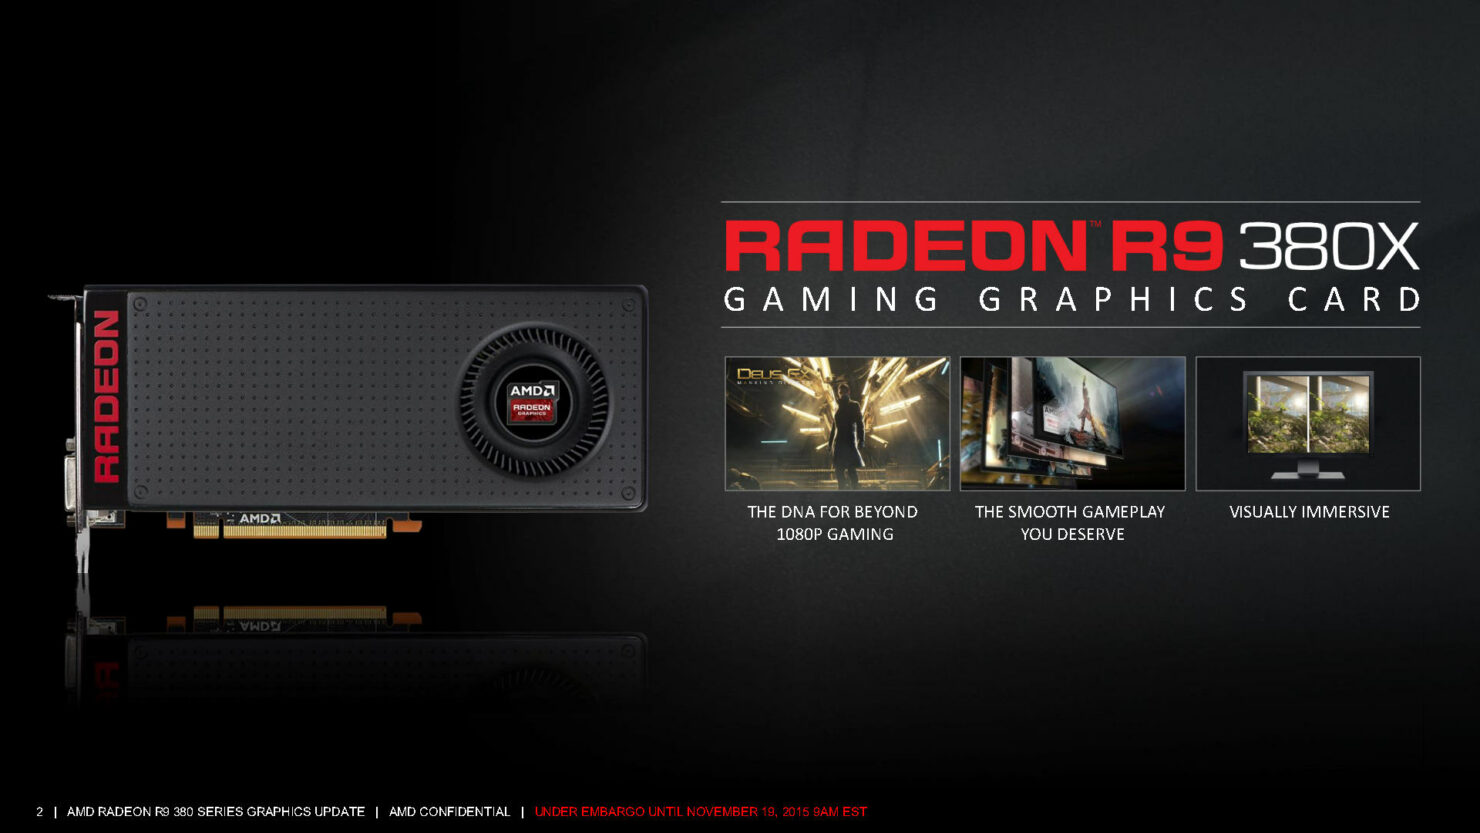 amd-radeon-r9-380x-press-deck-legally-approved-incl-aib-boardsjpg_page2